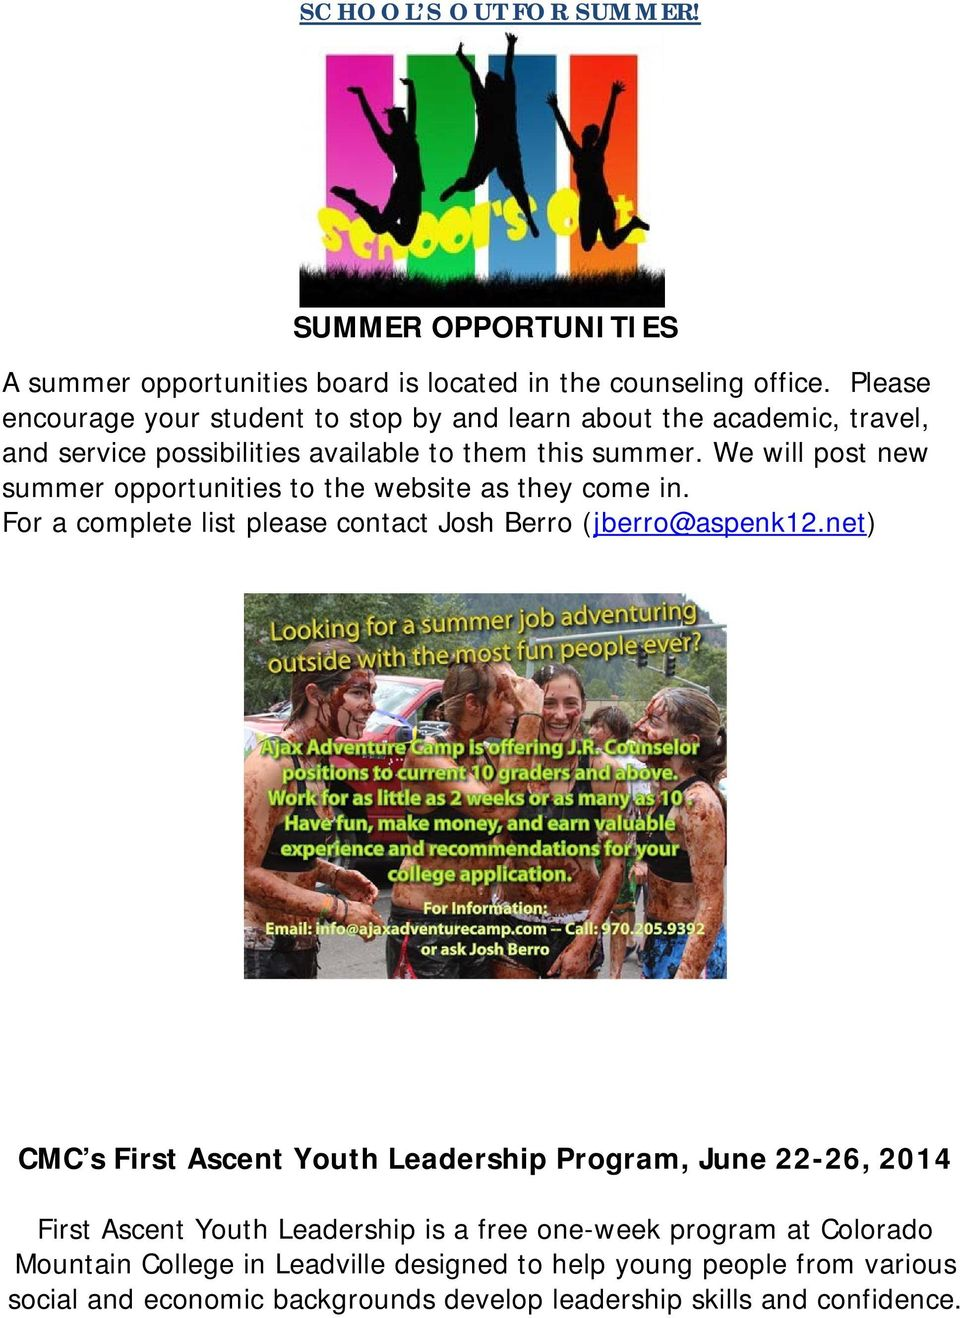 We will post new summer opportunities to the website as they come in. For a complete list please contact Josh Berro (jberro@aspenk12.